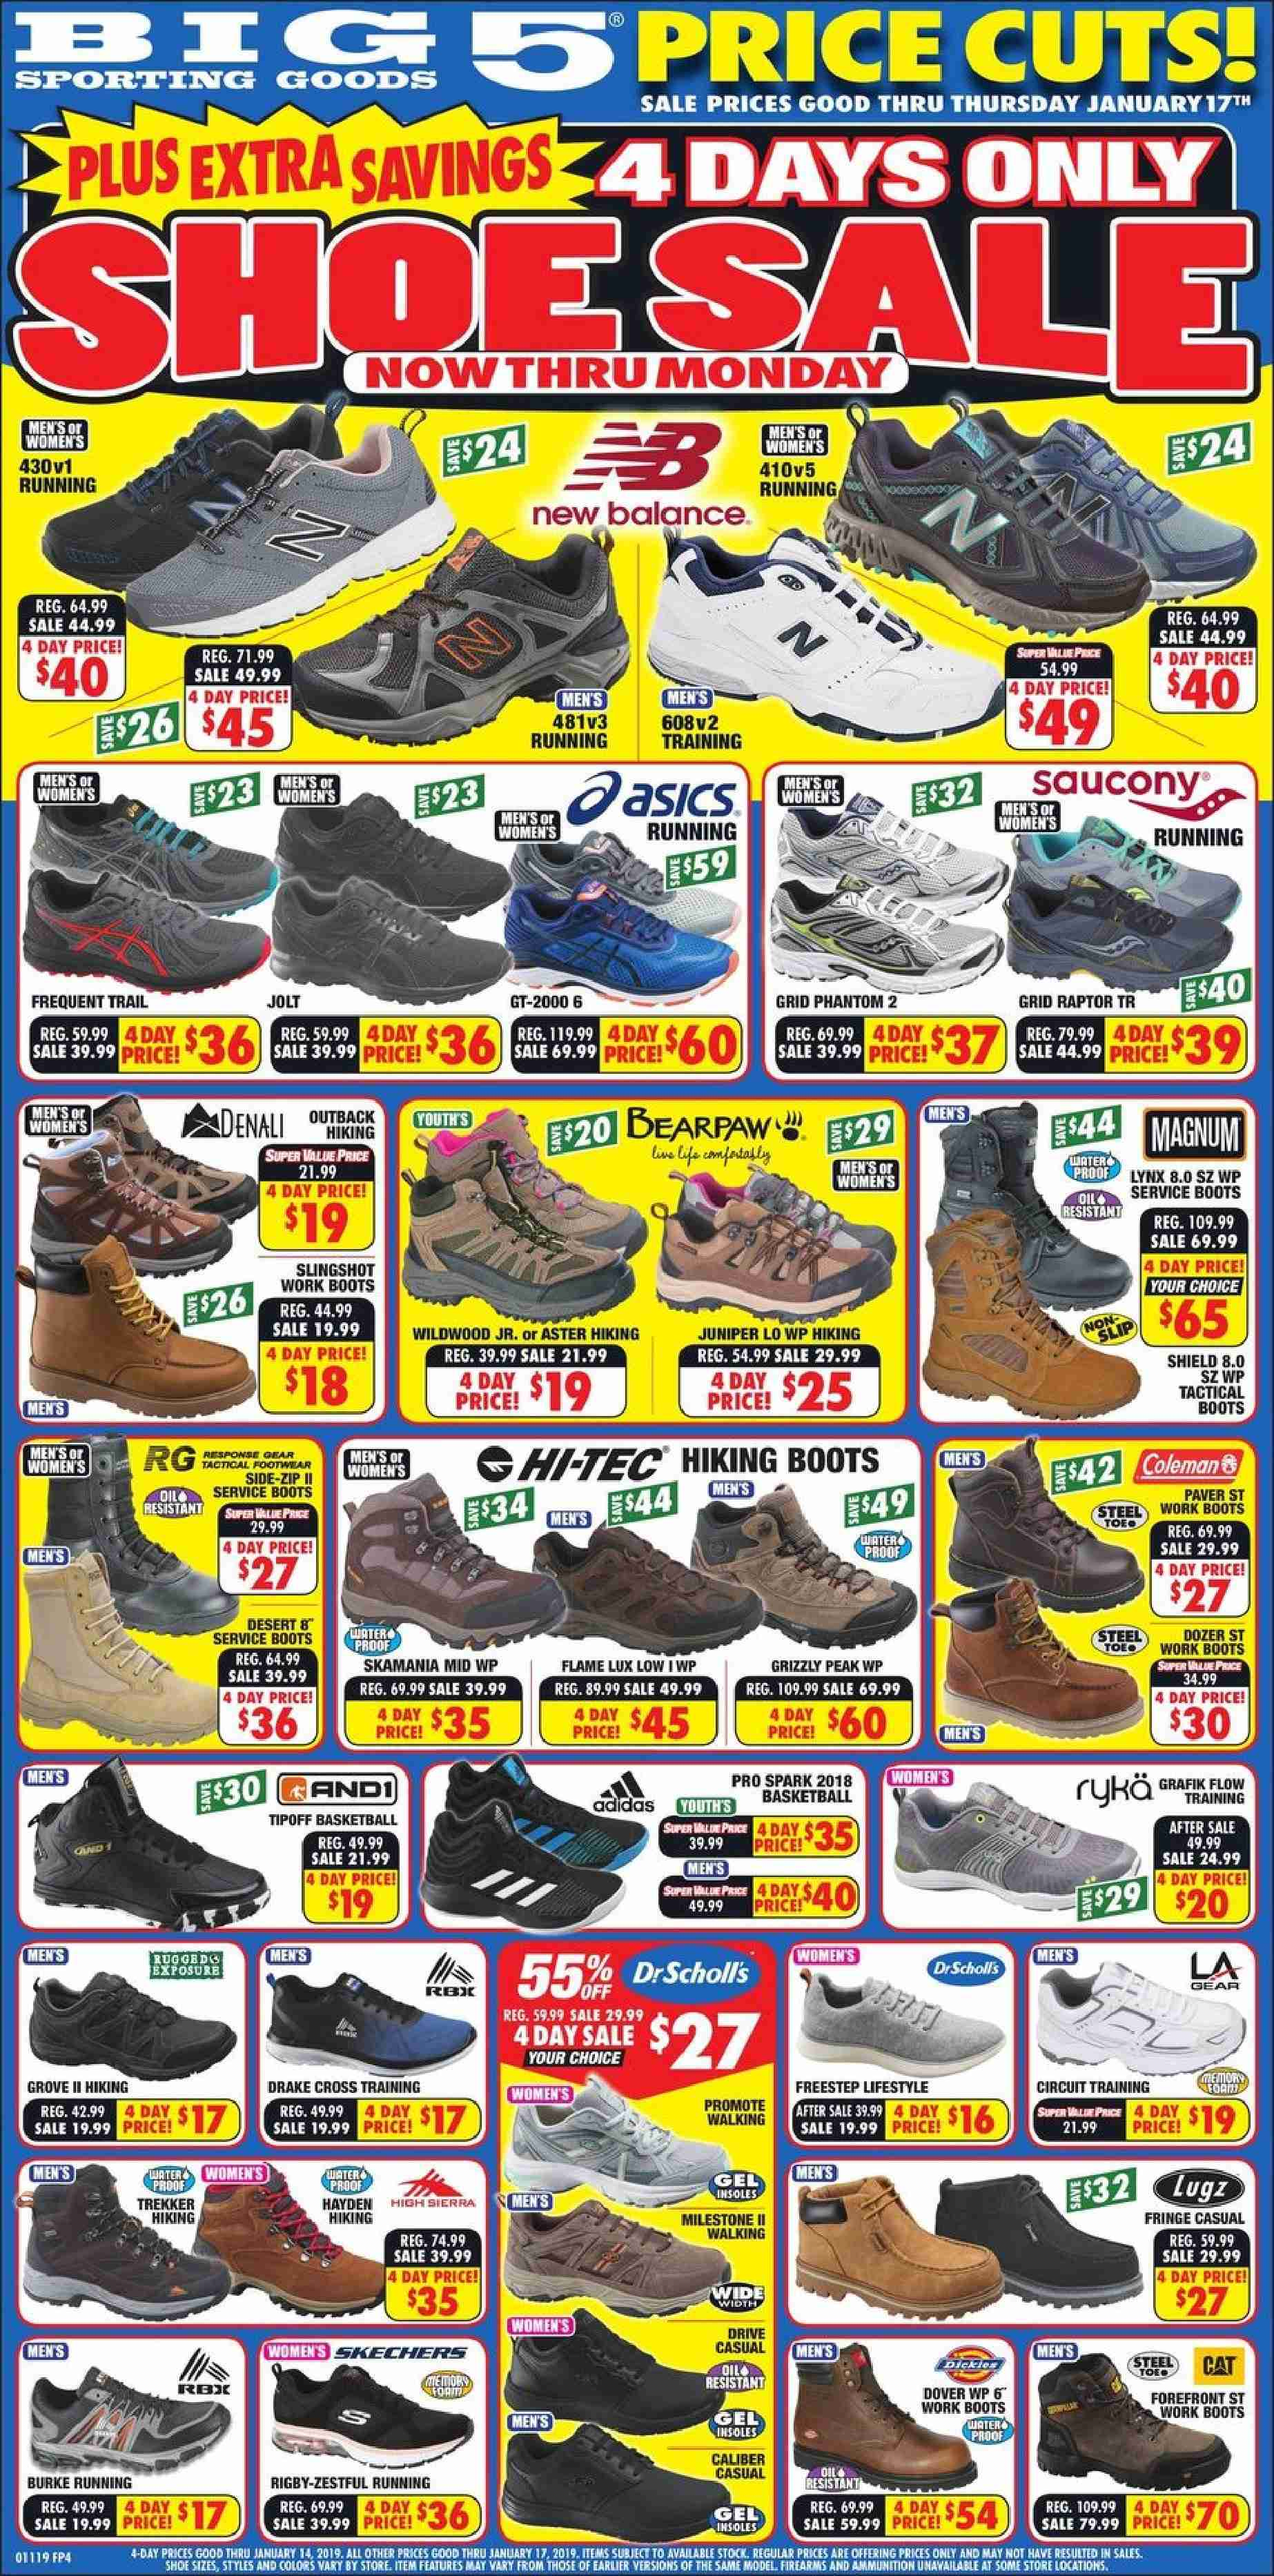 Big 5 Flyer - 01.11.2019 - 01.14.2019 - Sales products - ale, bearpaw, boots, new balance, tec, work boots, hi-tec, footwear, basketball. Page 1.